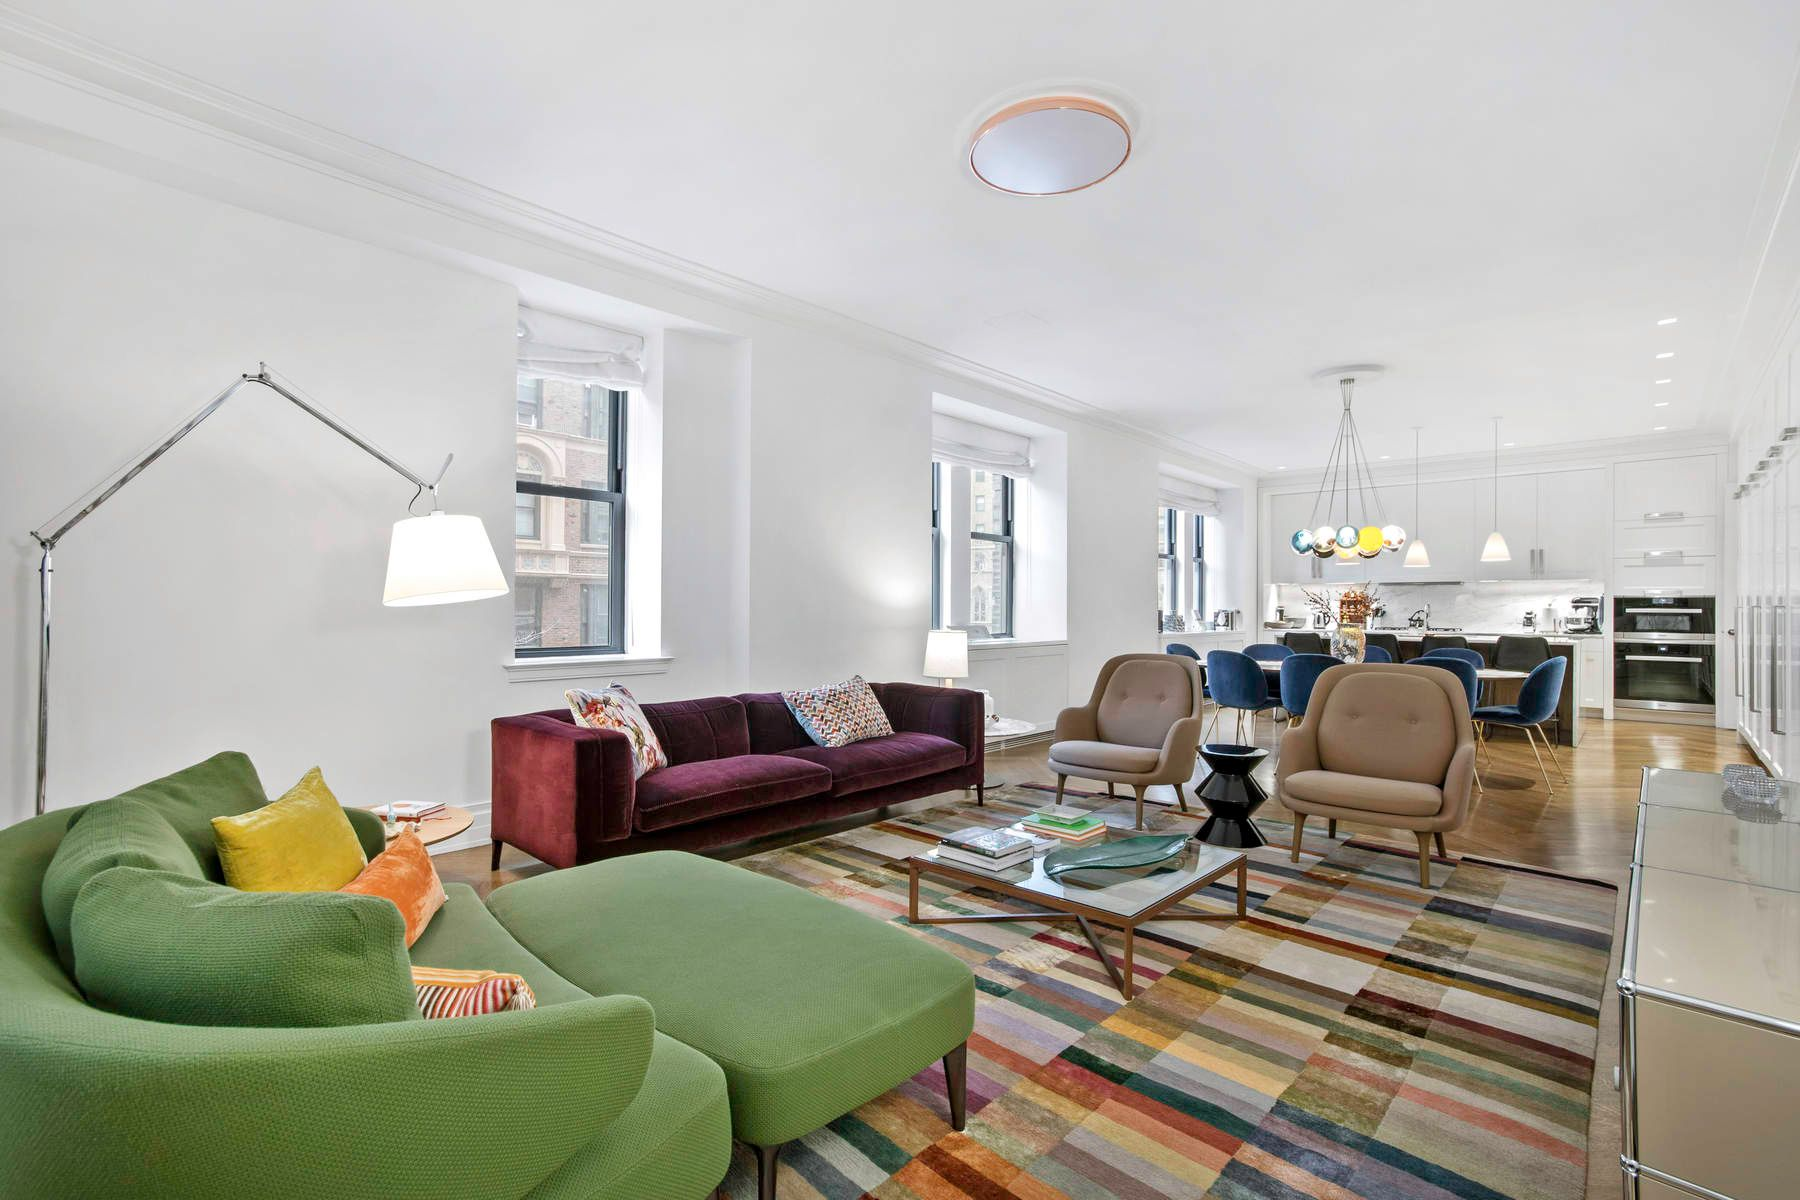 Copropriété pour l Vente à The Astor 235 West 75th Street Apt 320, Upper West Side, New York, New York, 10023 États-Unis